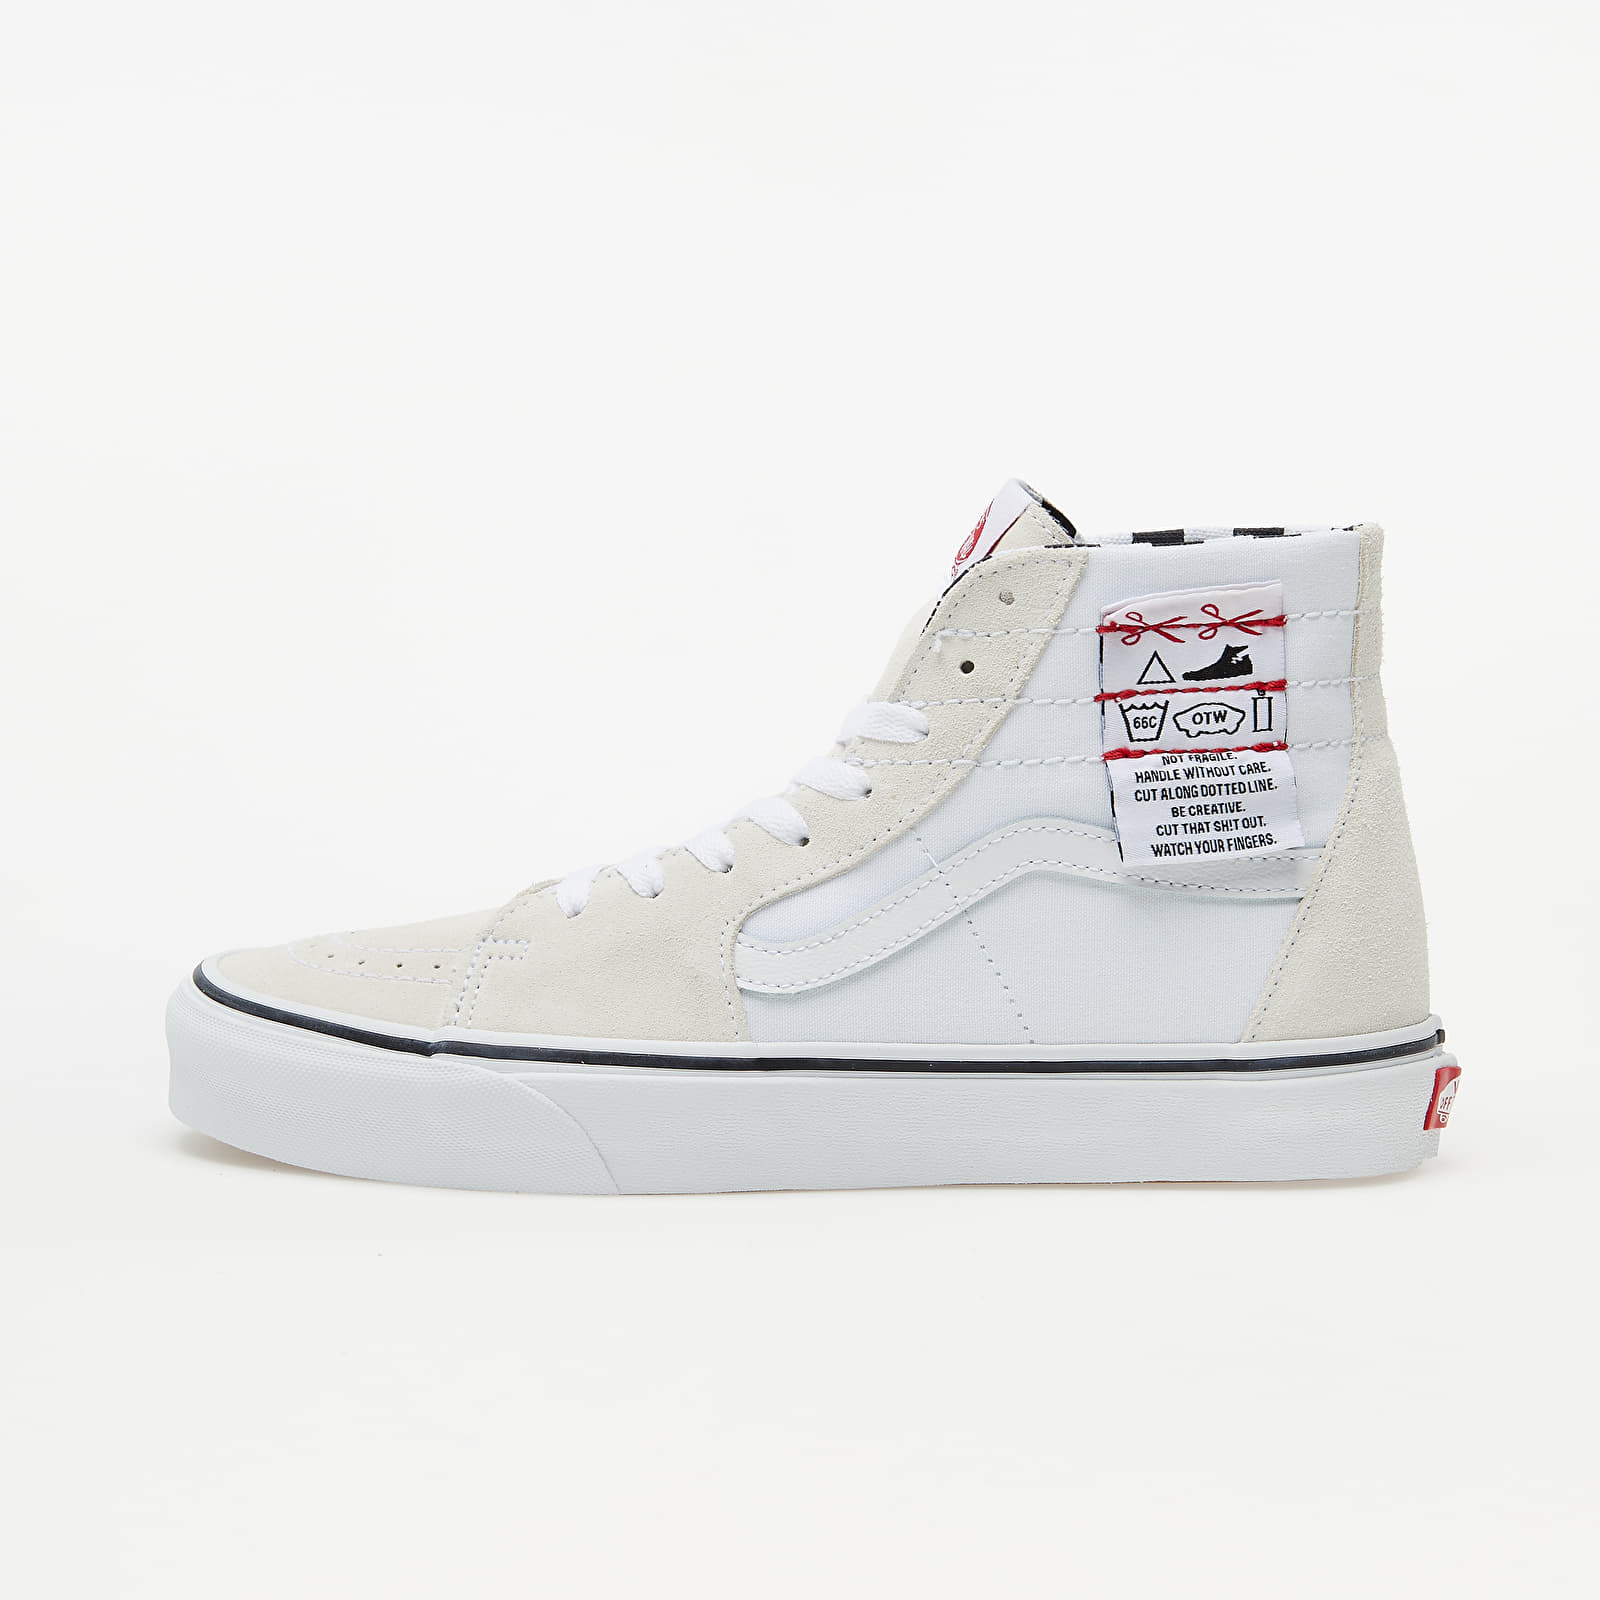 Chaussures et baskets homme Vans Sk8-Hi Tapered (Diy) White/ Tru